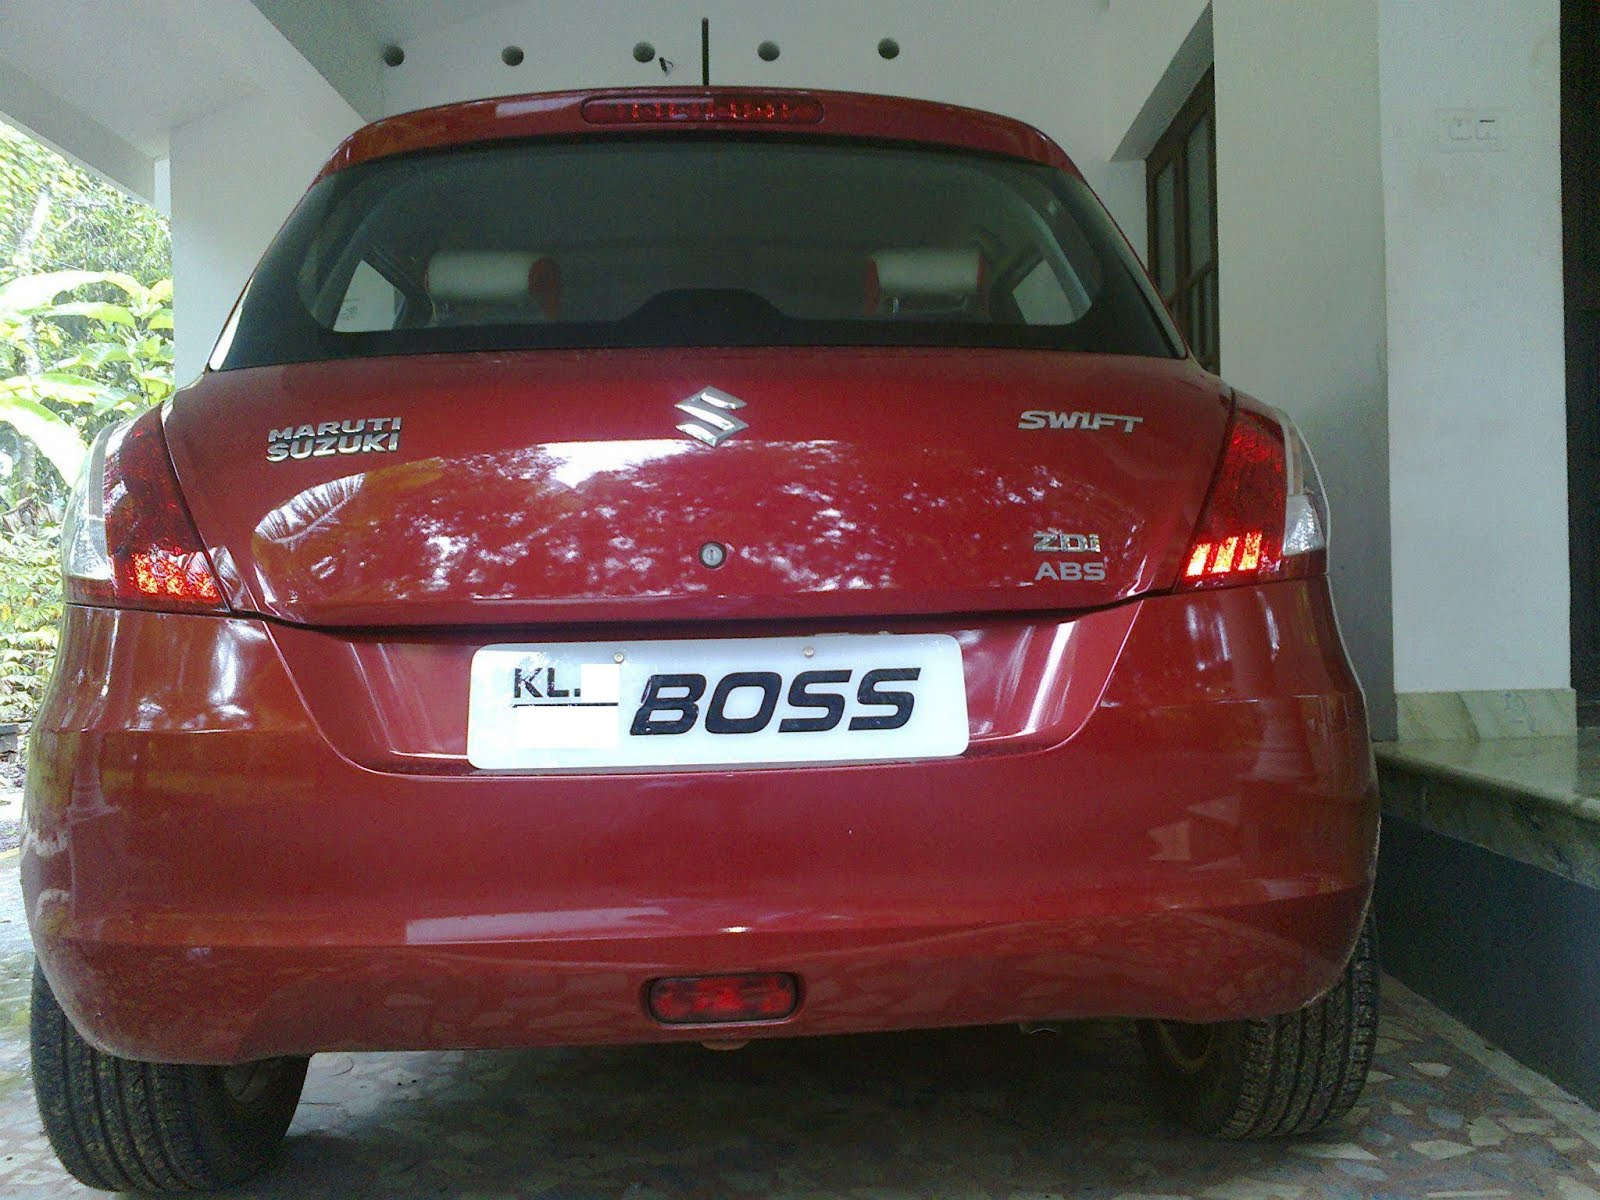 Stars And Cars Boss Number Plate 8055